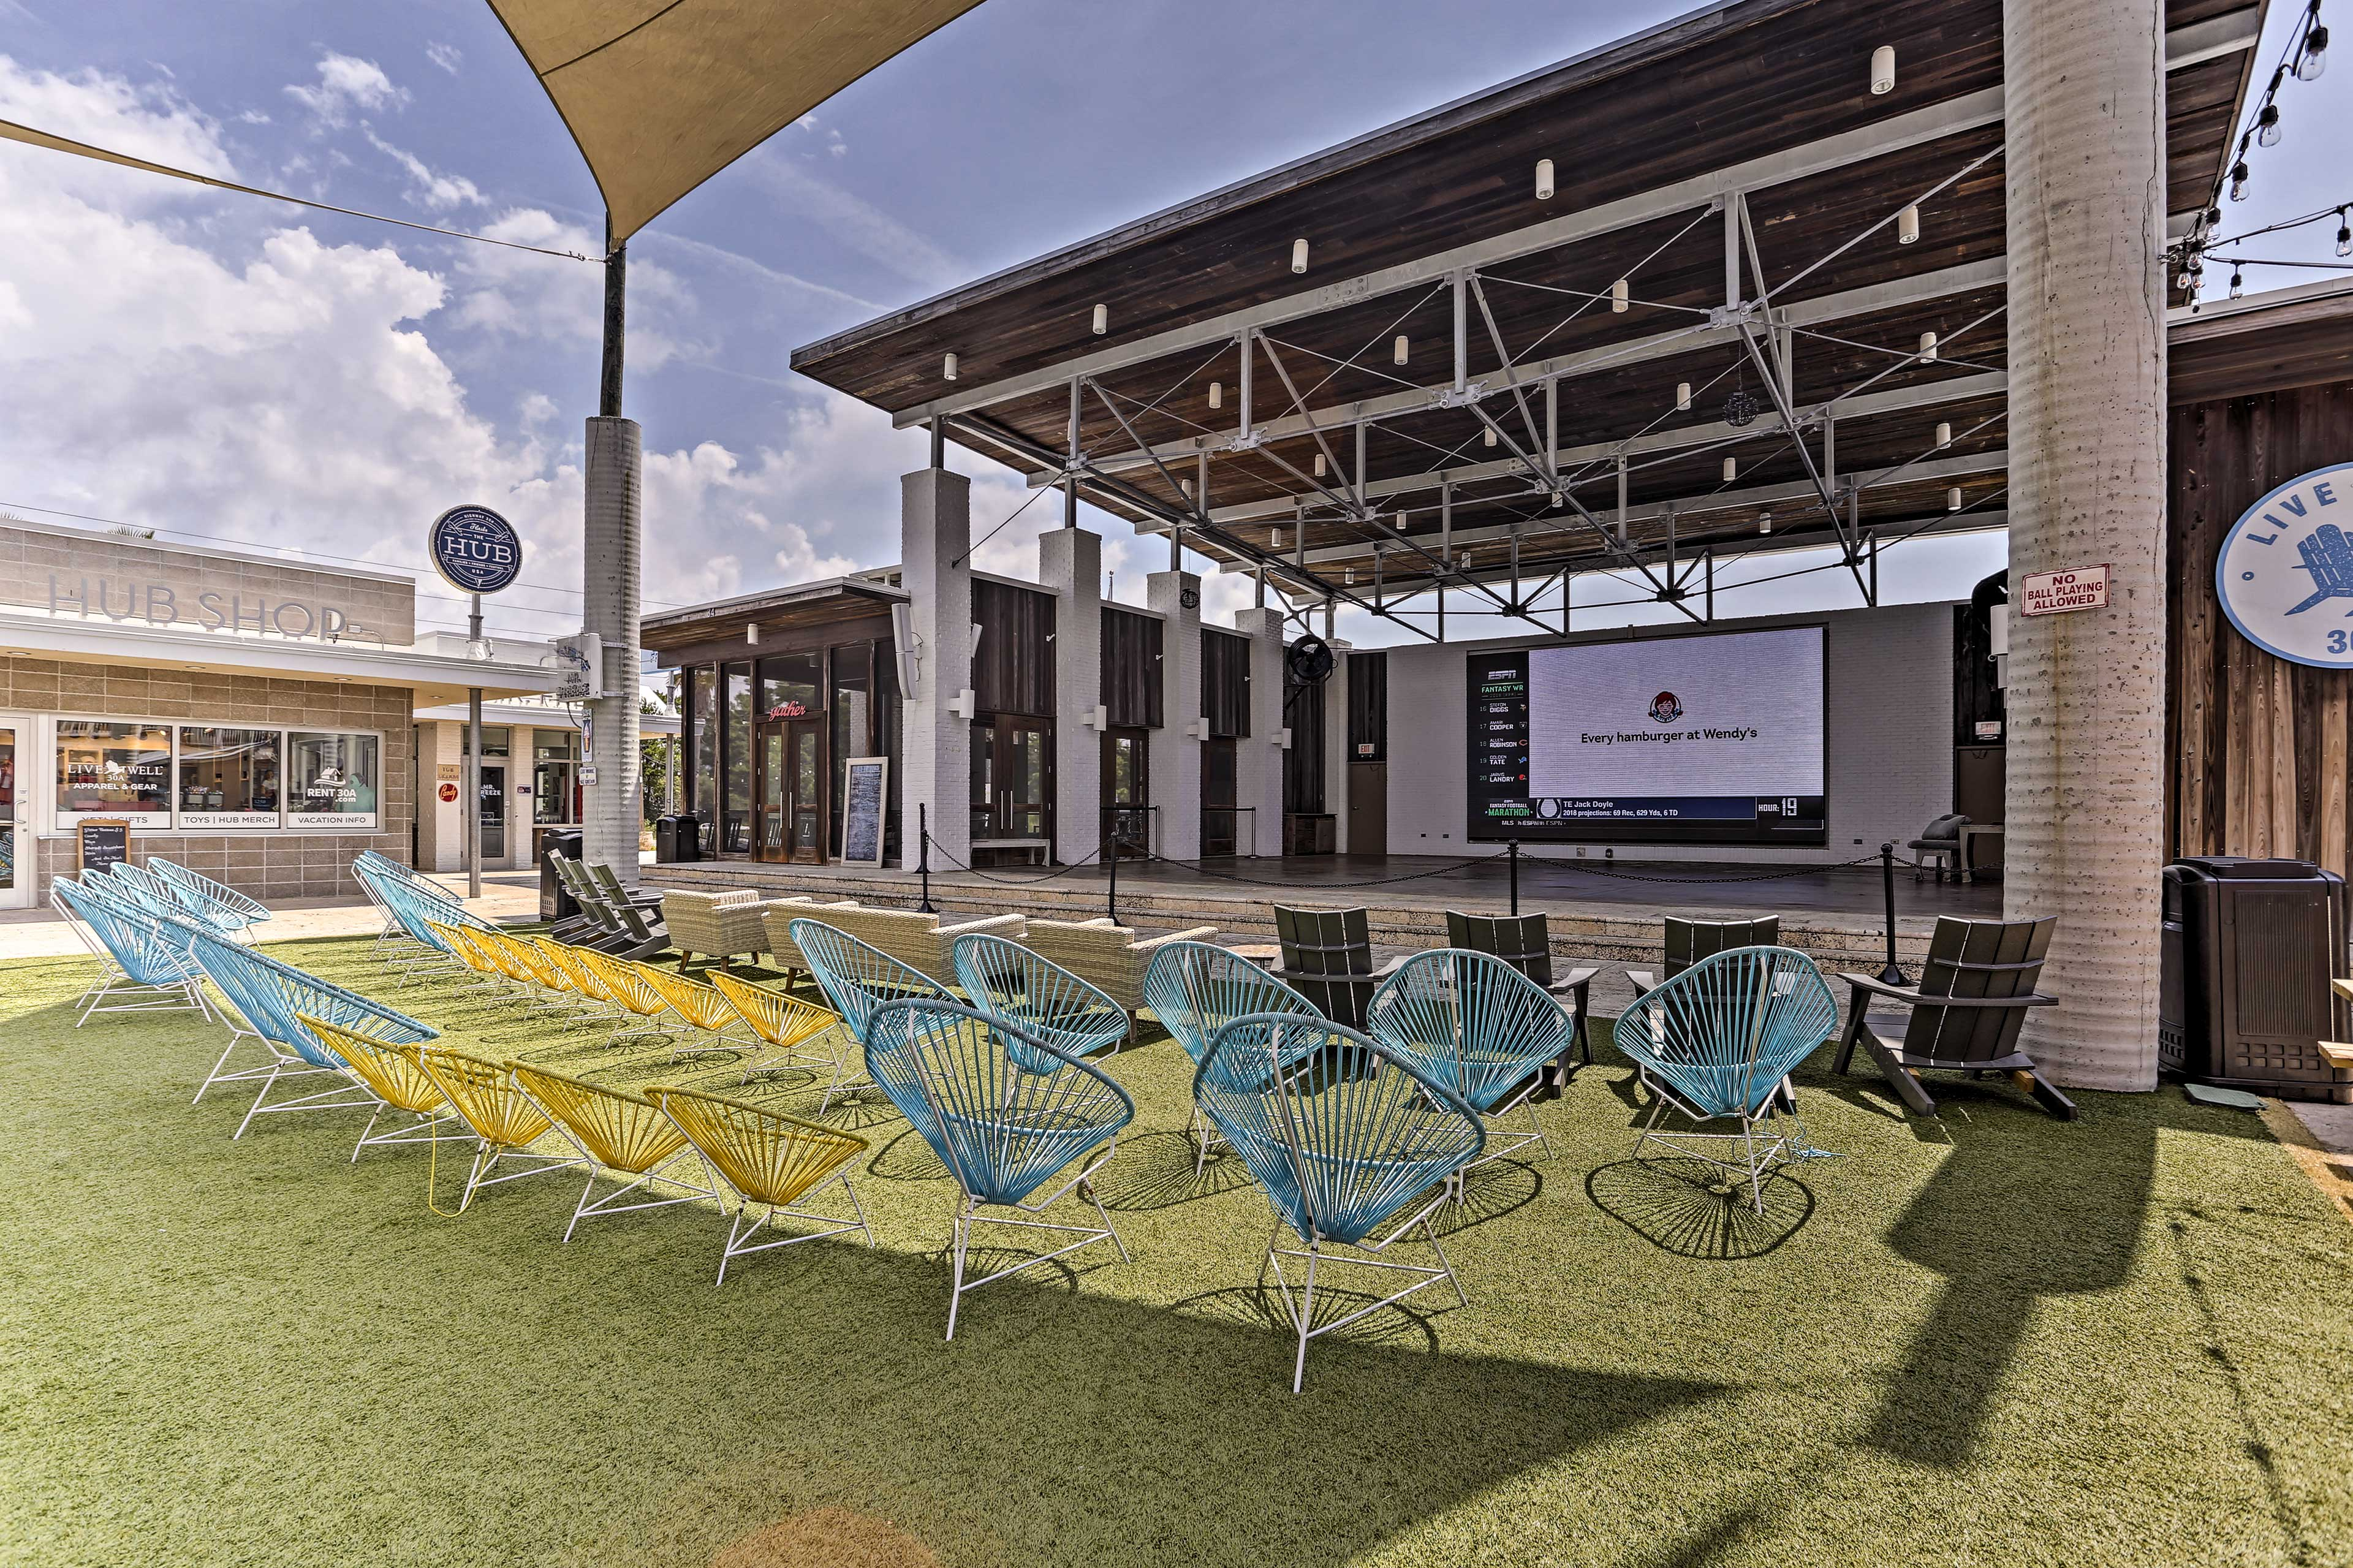 The pavilion hosts numerous events including concerts and movie nights.